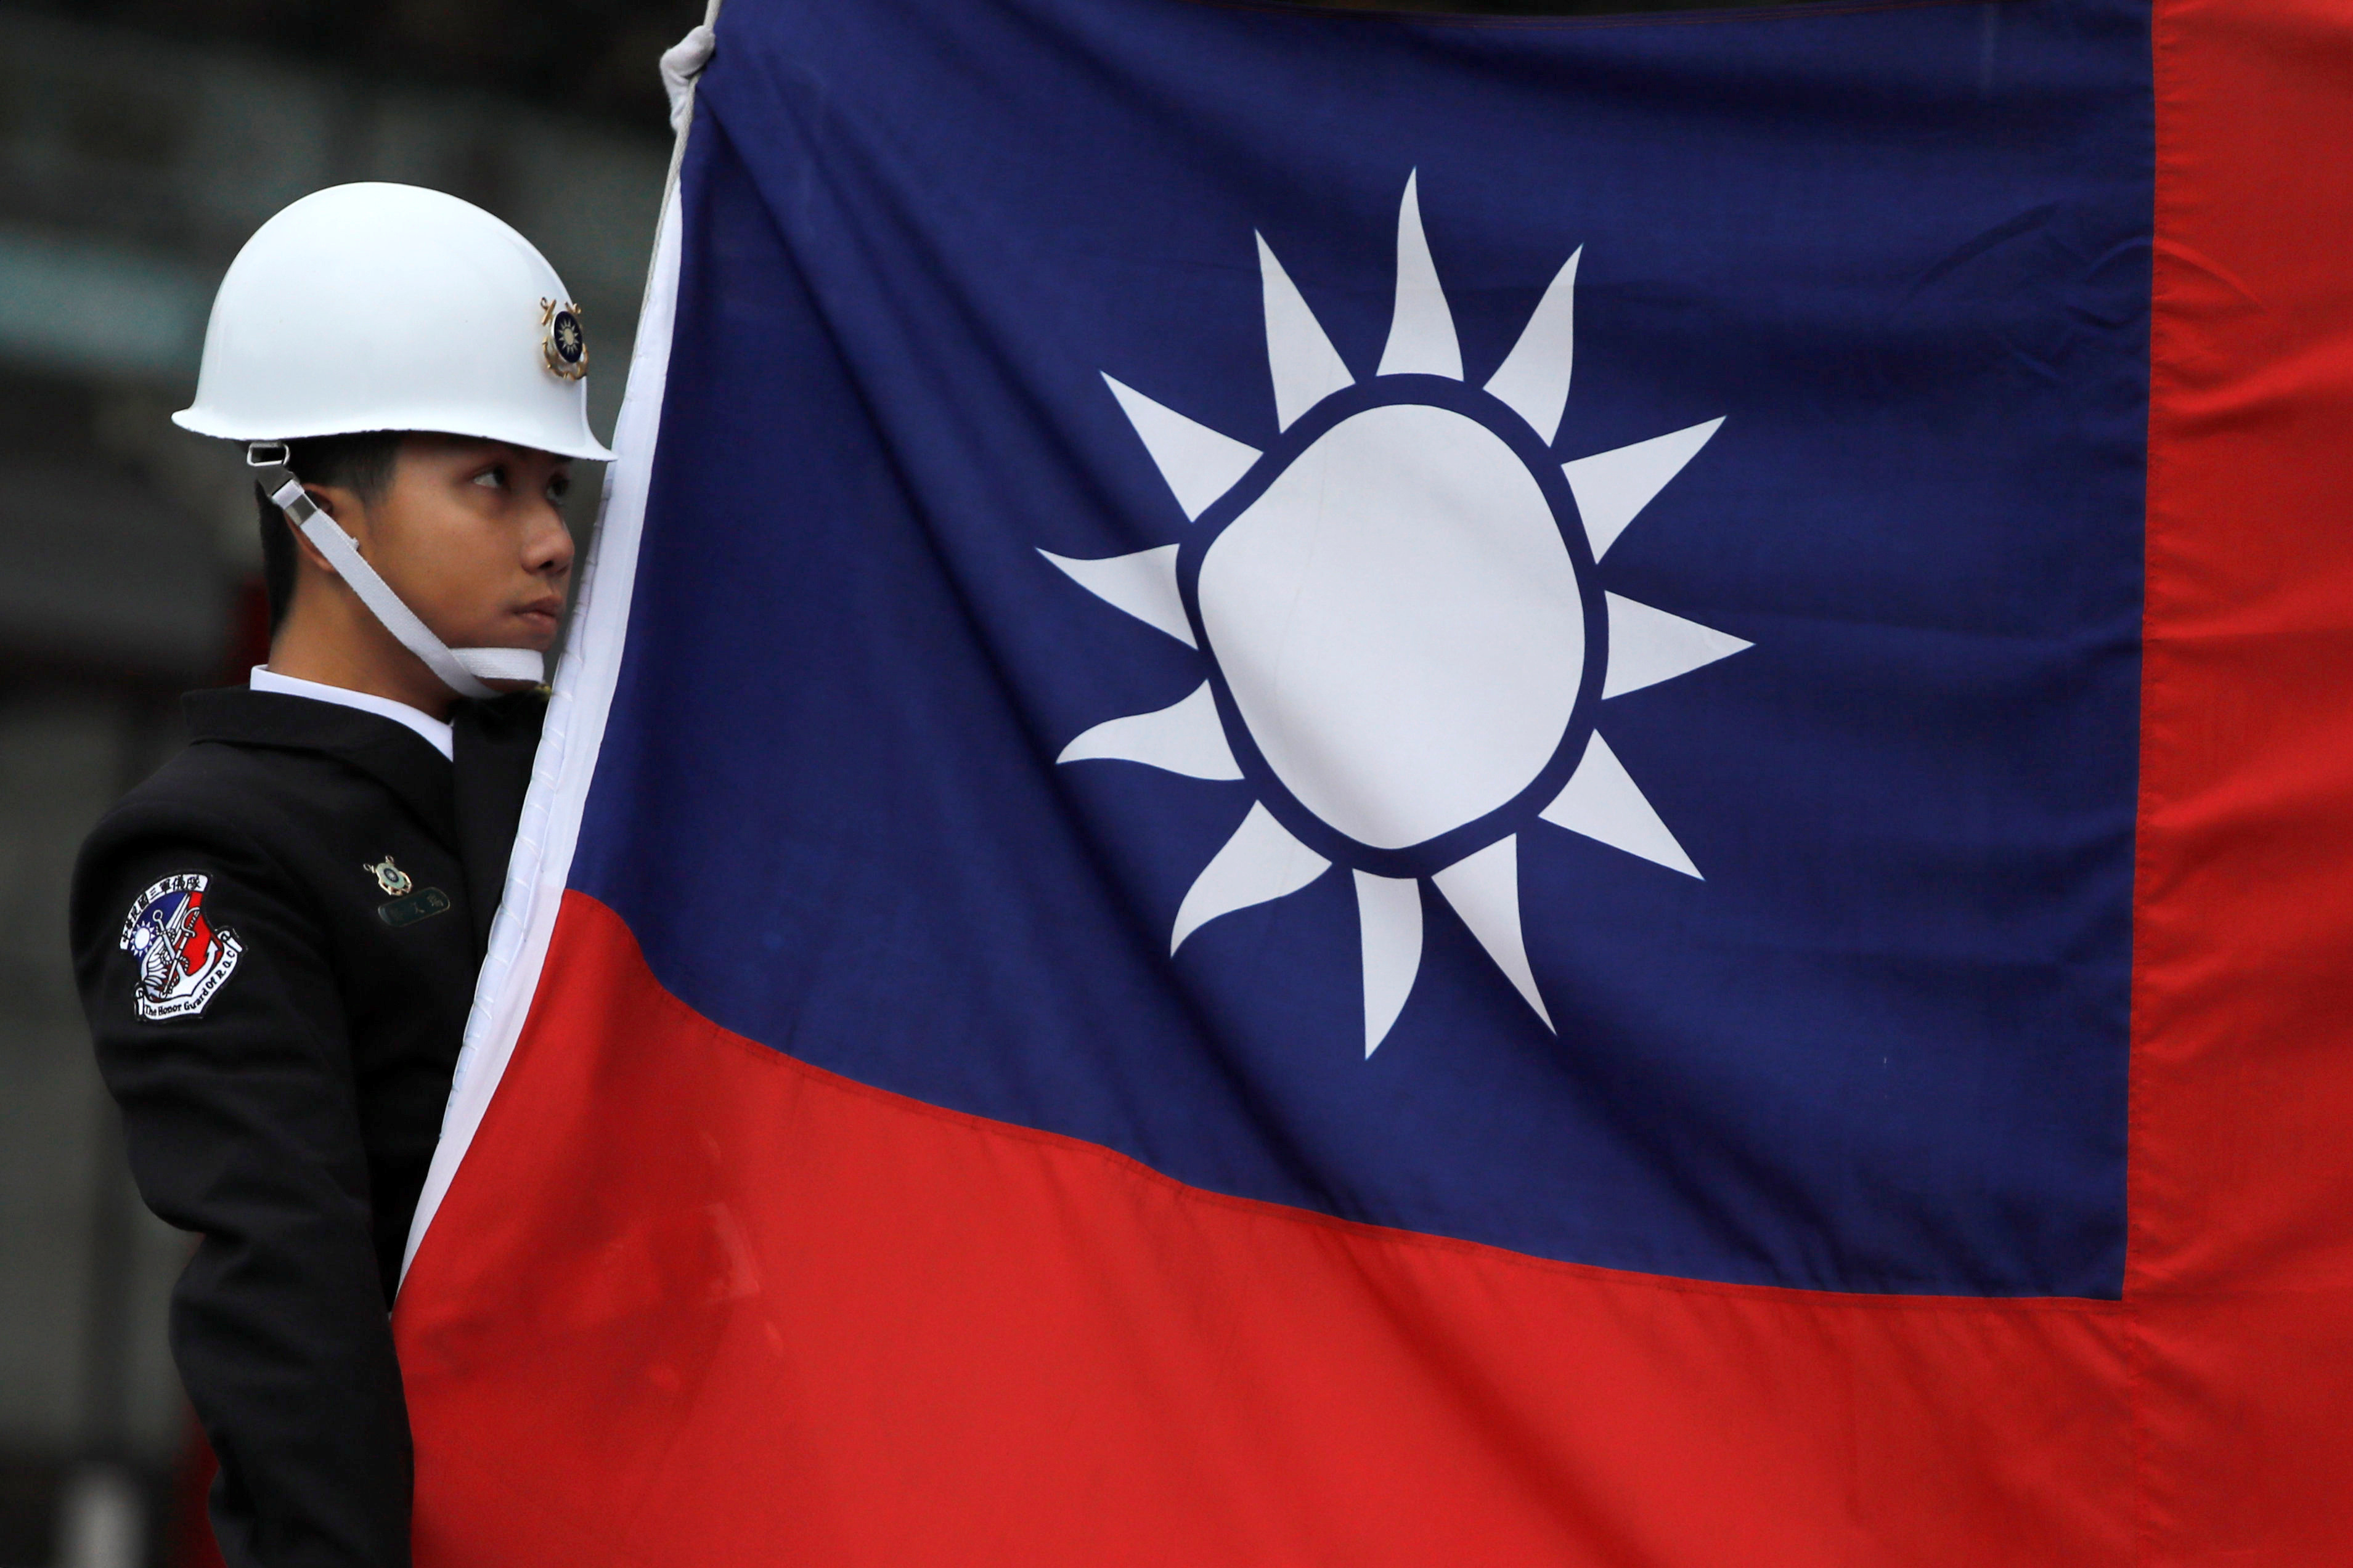 Beijing's goal is re-unification with Taiwan—Why can't it